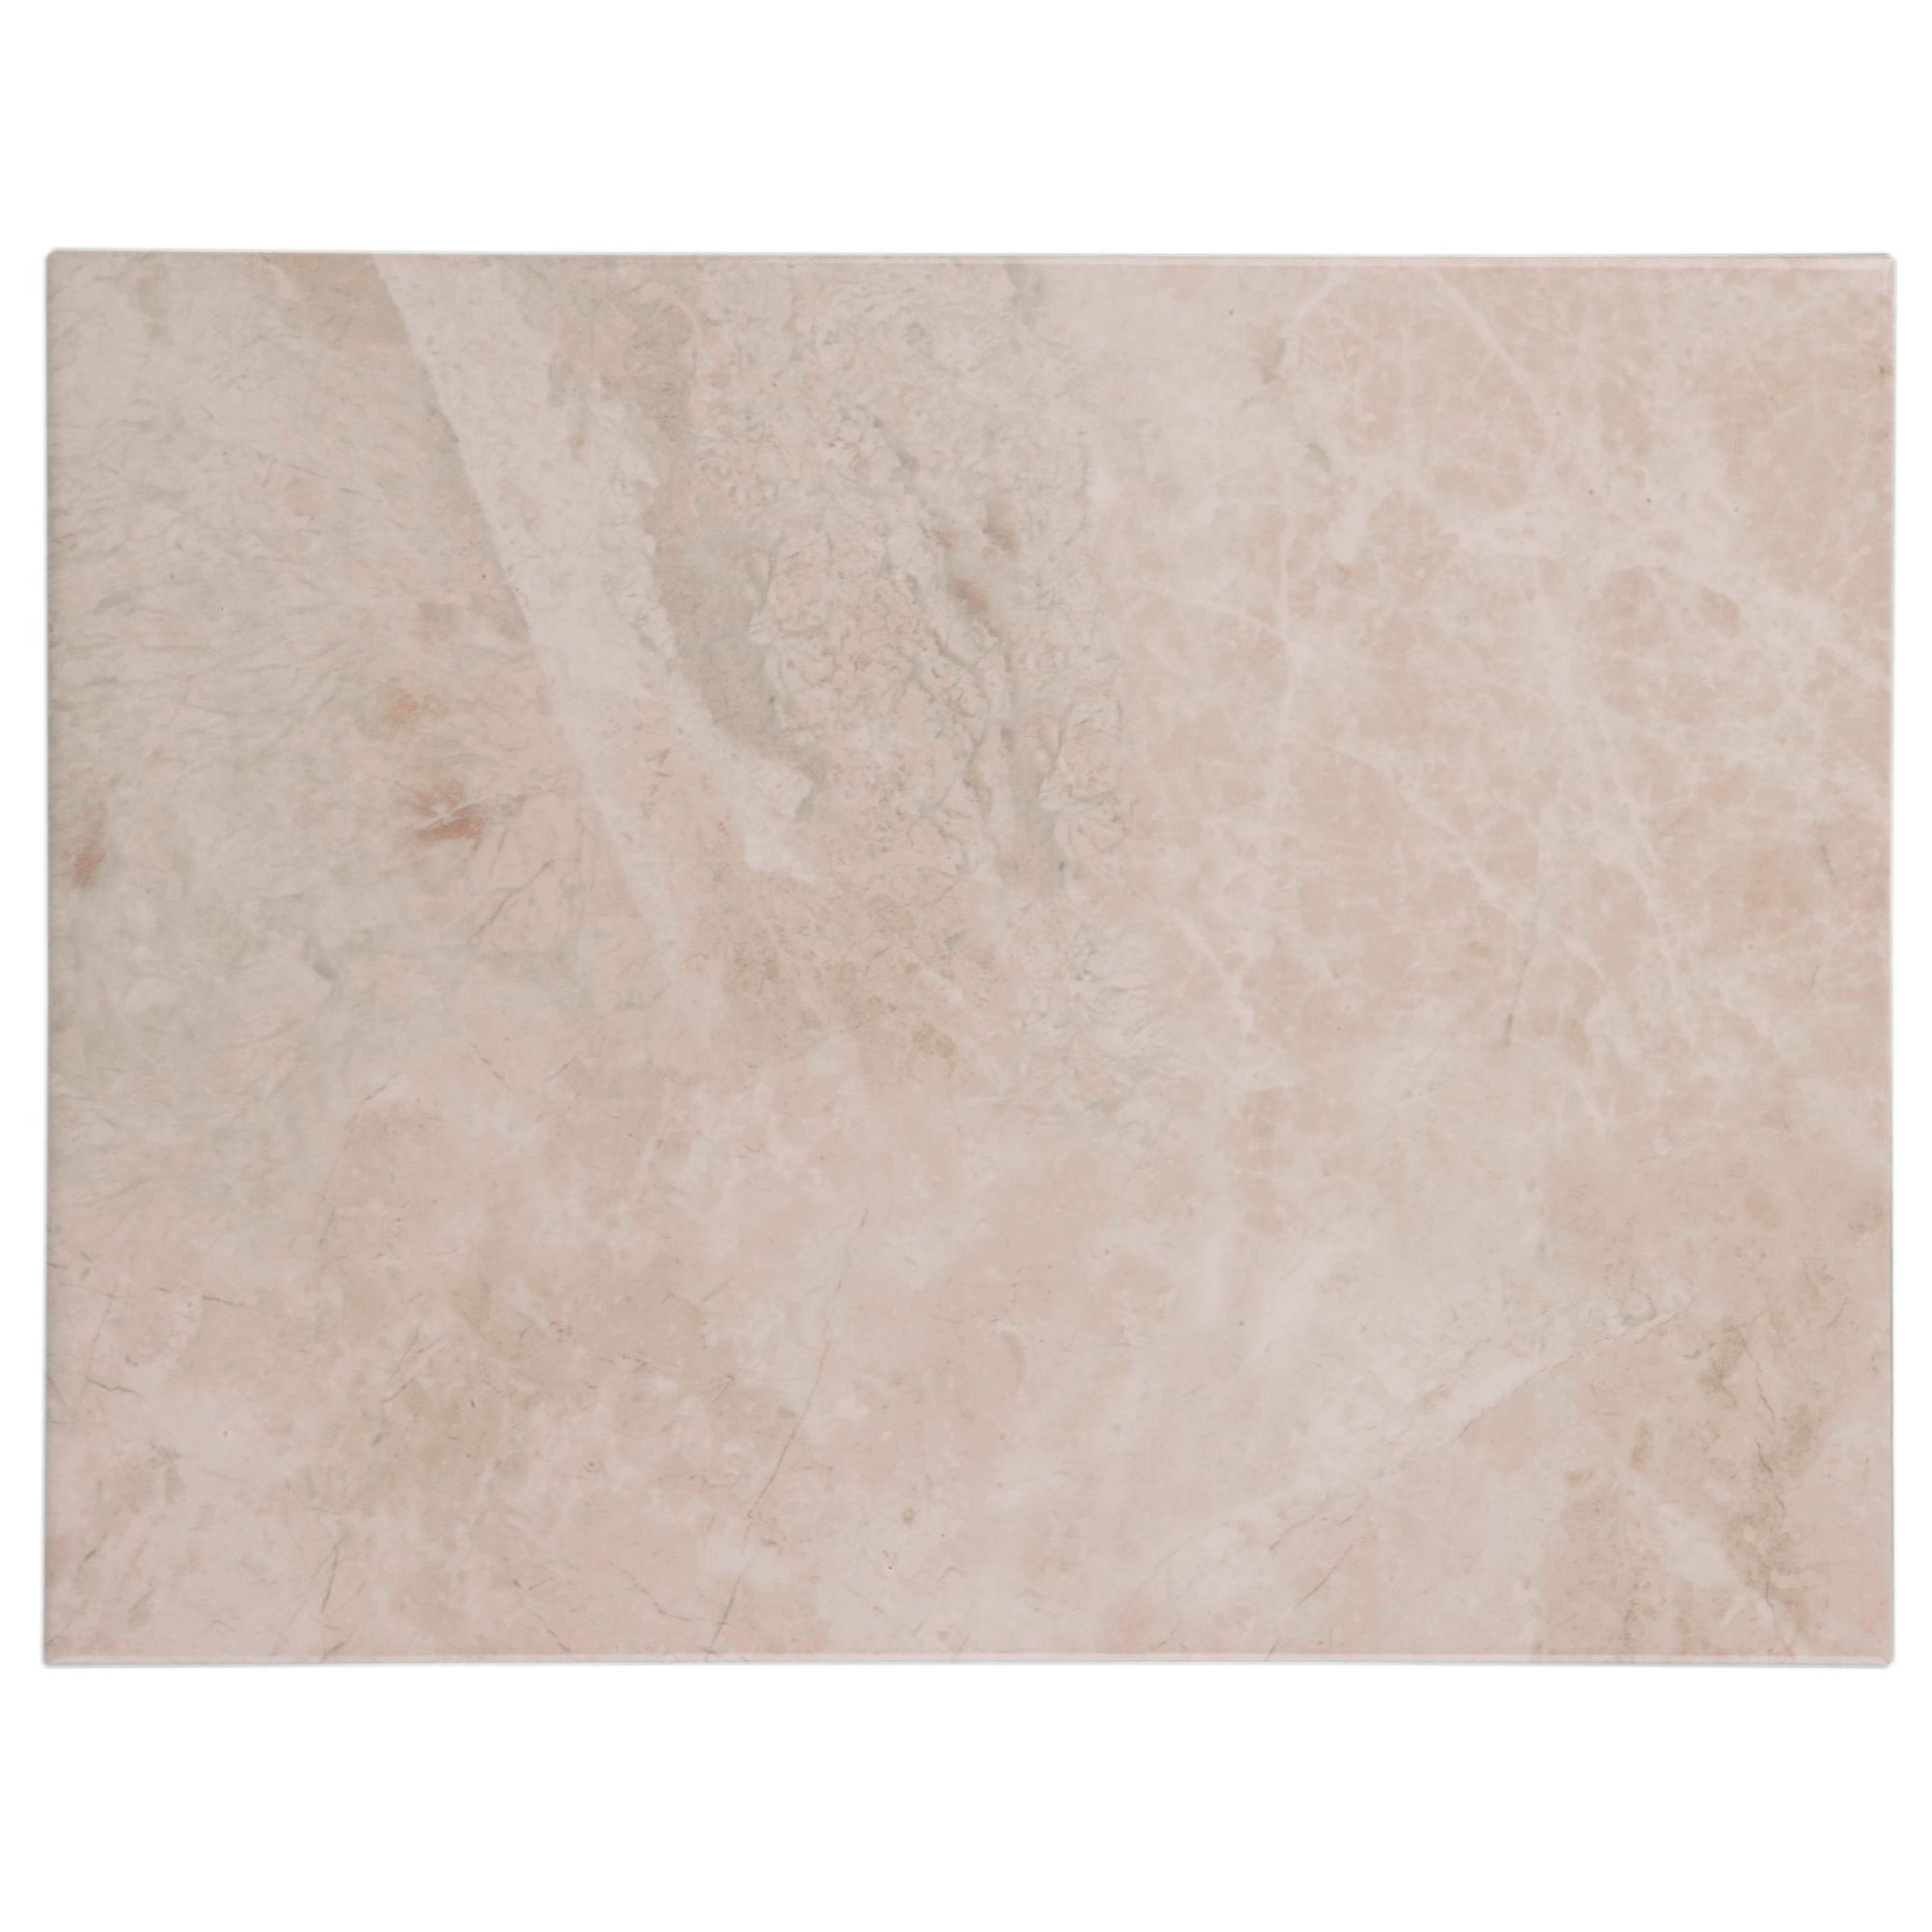 Perouso White Gloss Ceramic Wall Tile Pack Of 6 L 600mm: Illusion Cappuccino Marble Effect Ceramic Wall & Floor